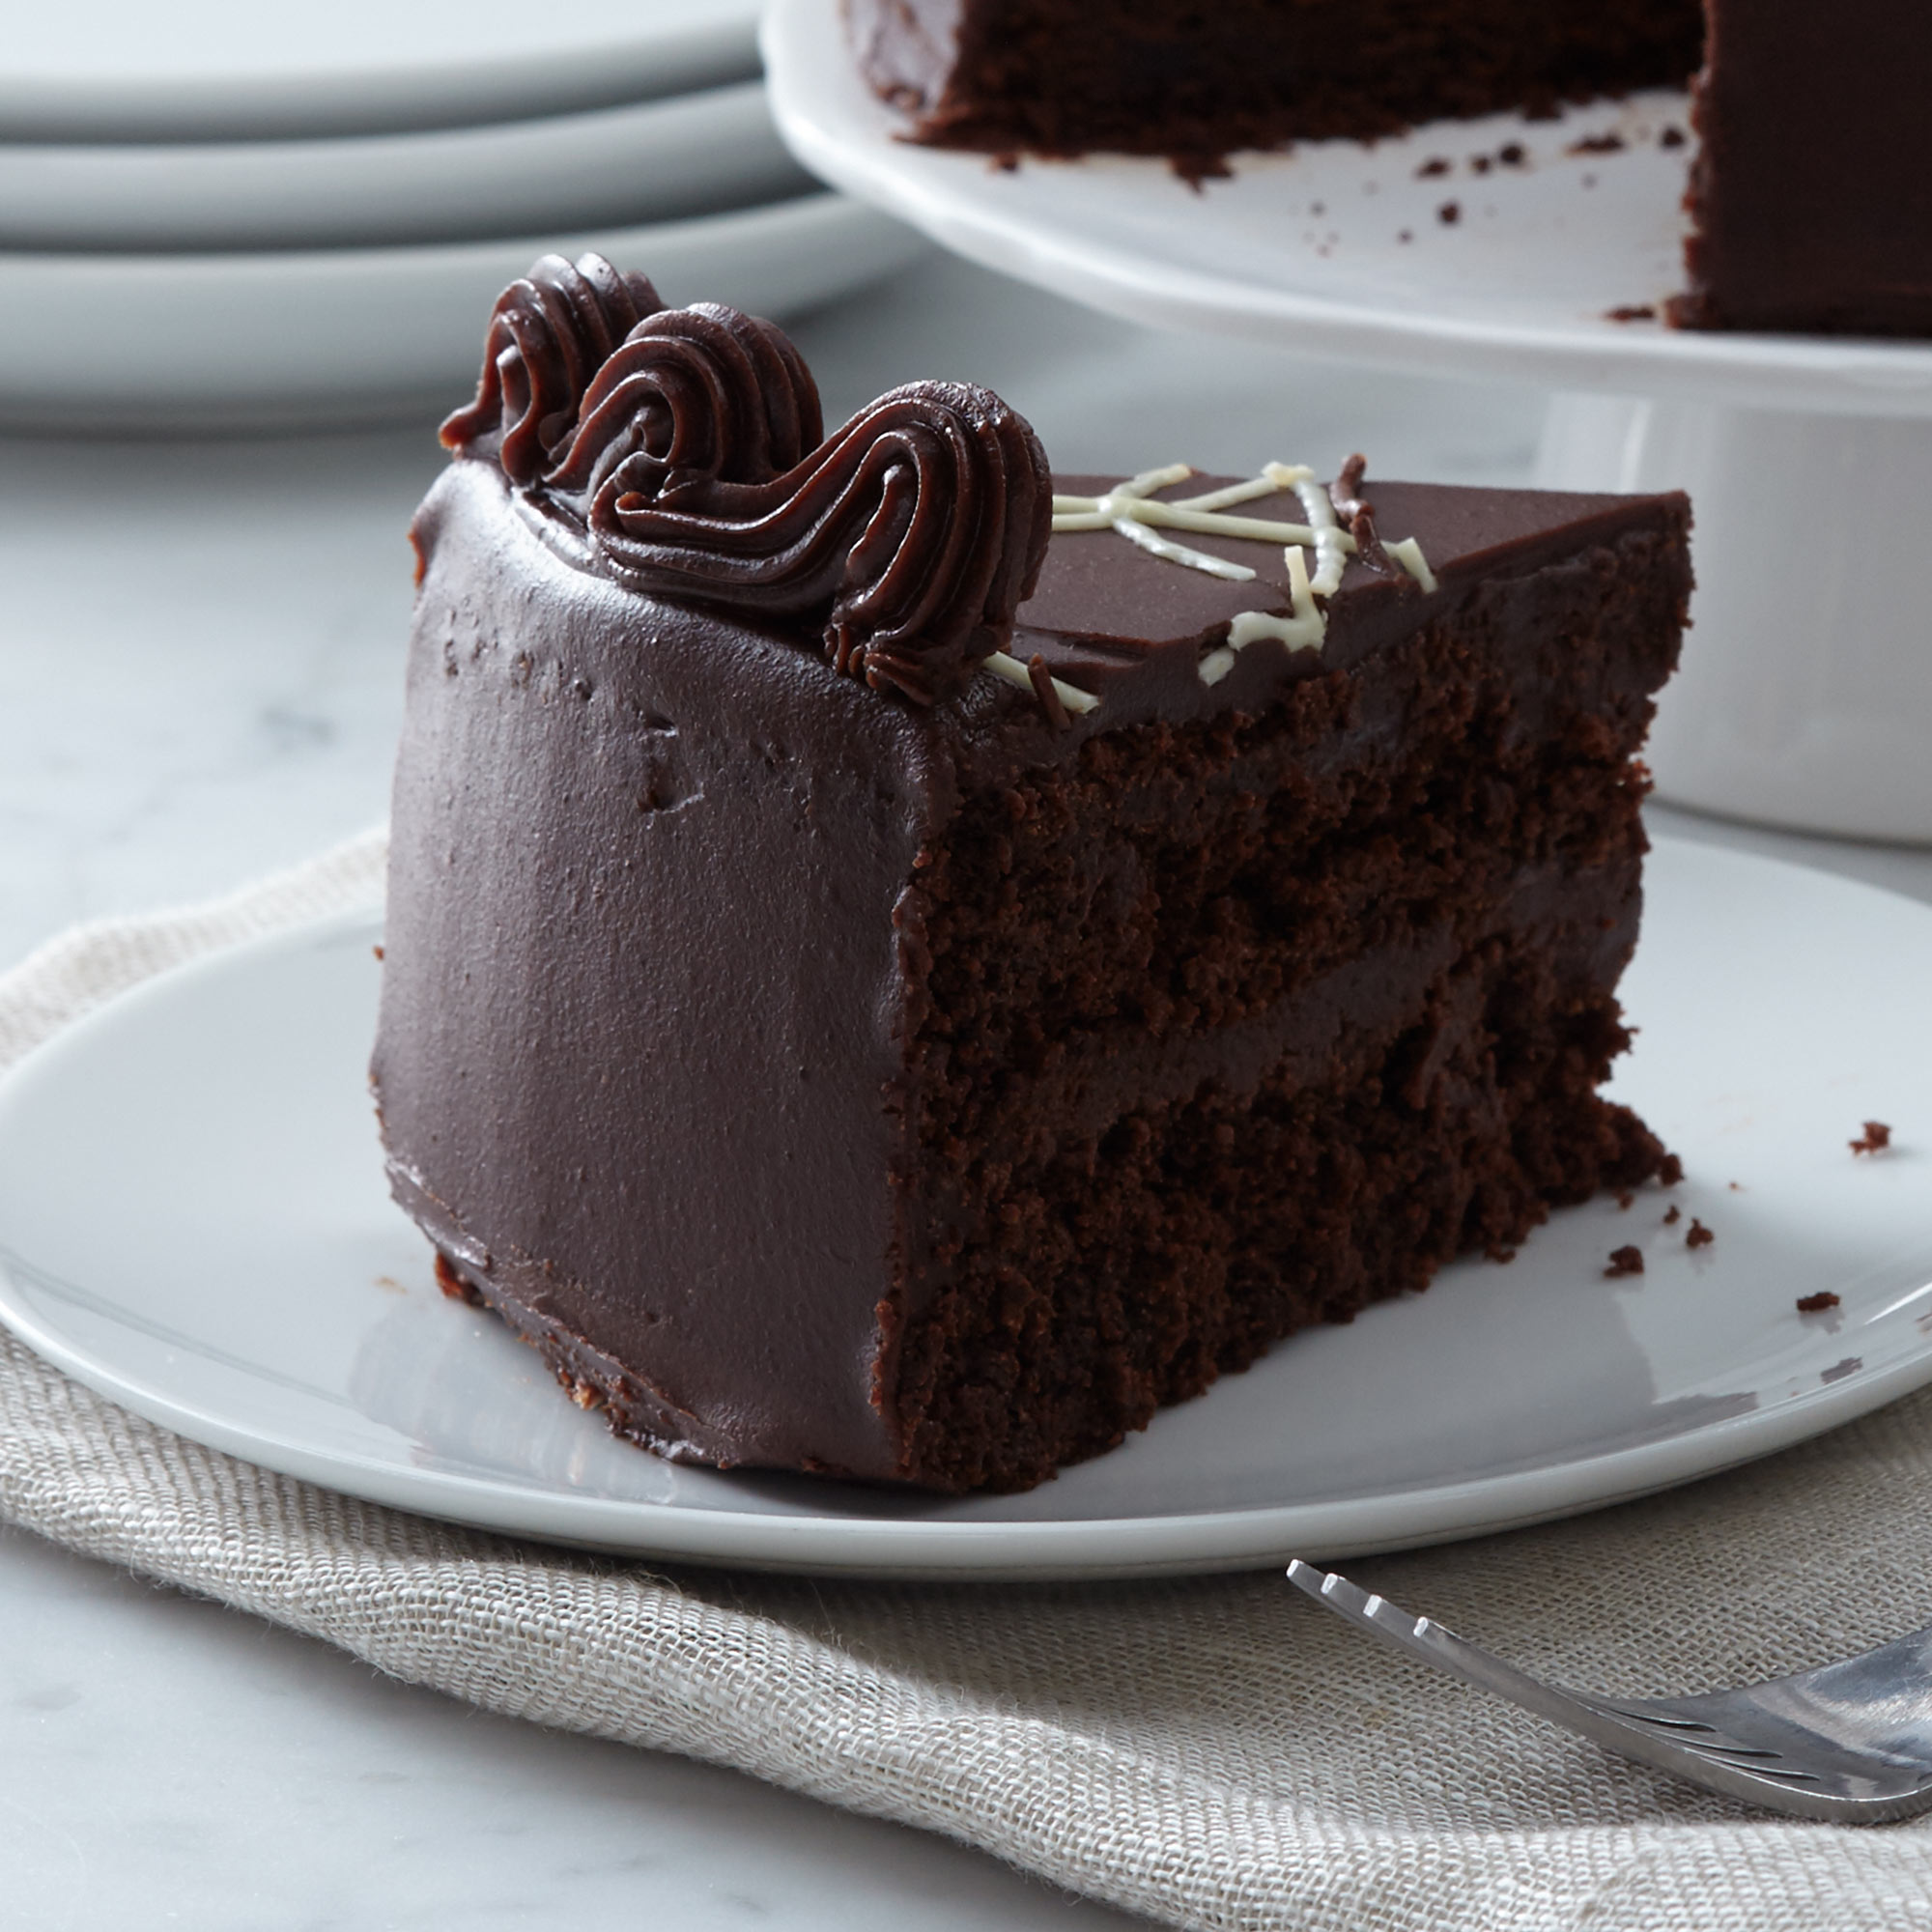 Images Of Cakes And Chocolates